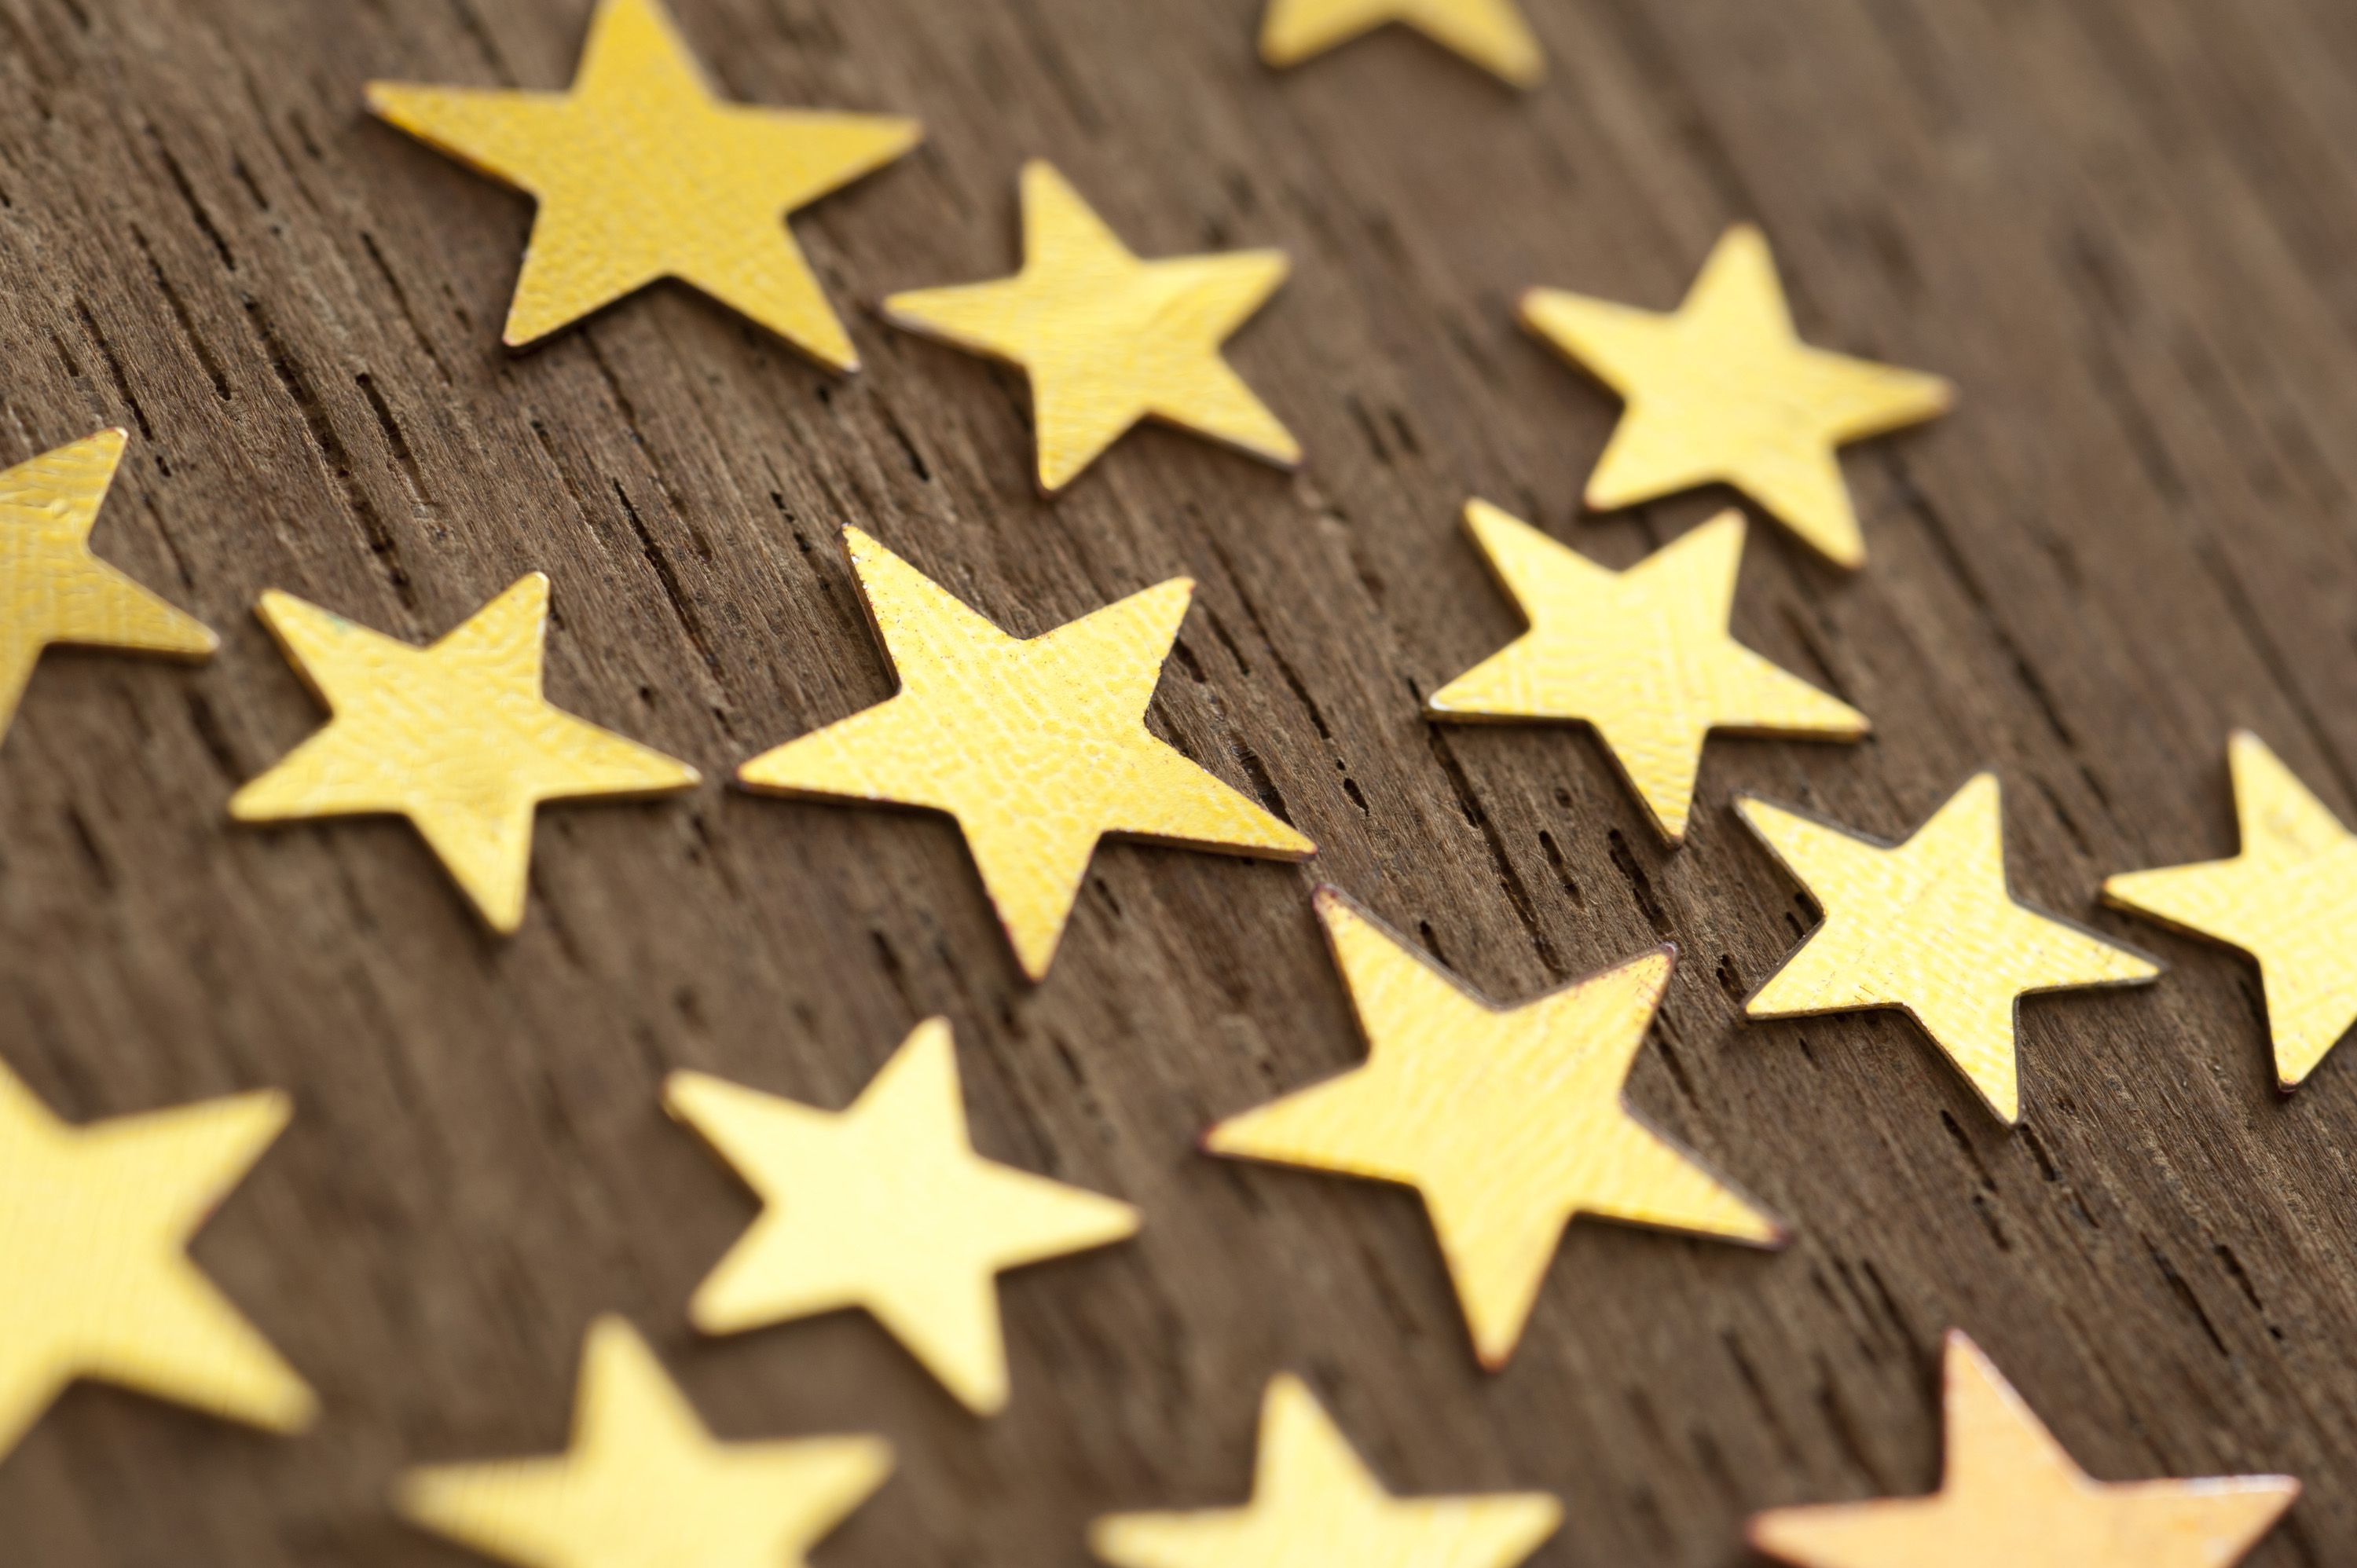 free stock photo 11201 golden stars isolated on wood freeimageslive